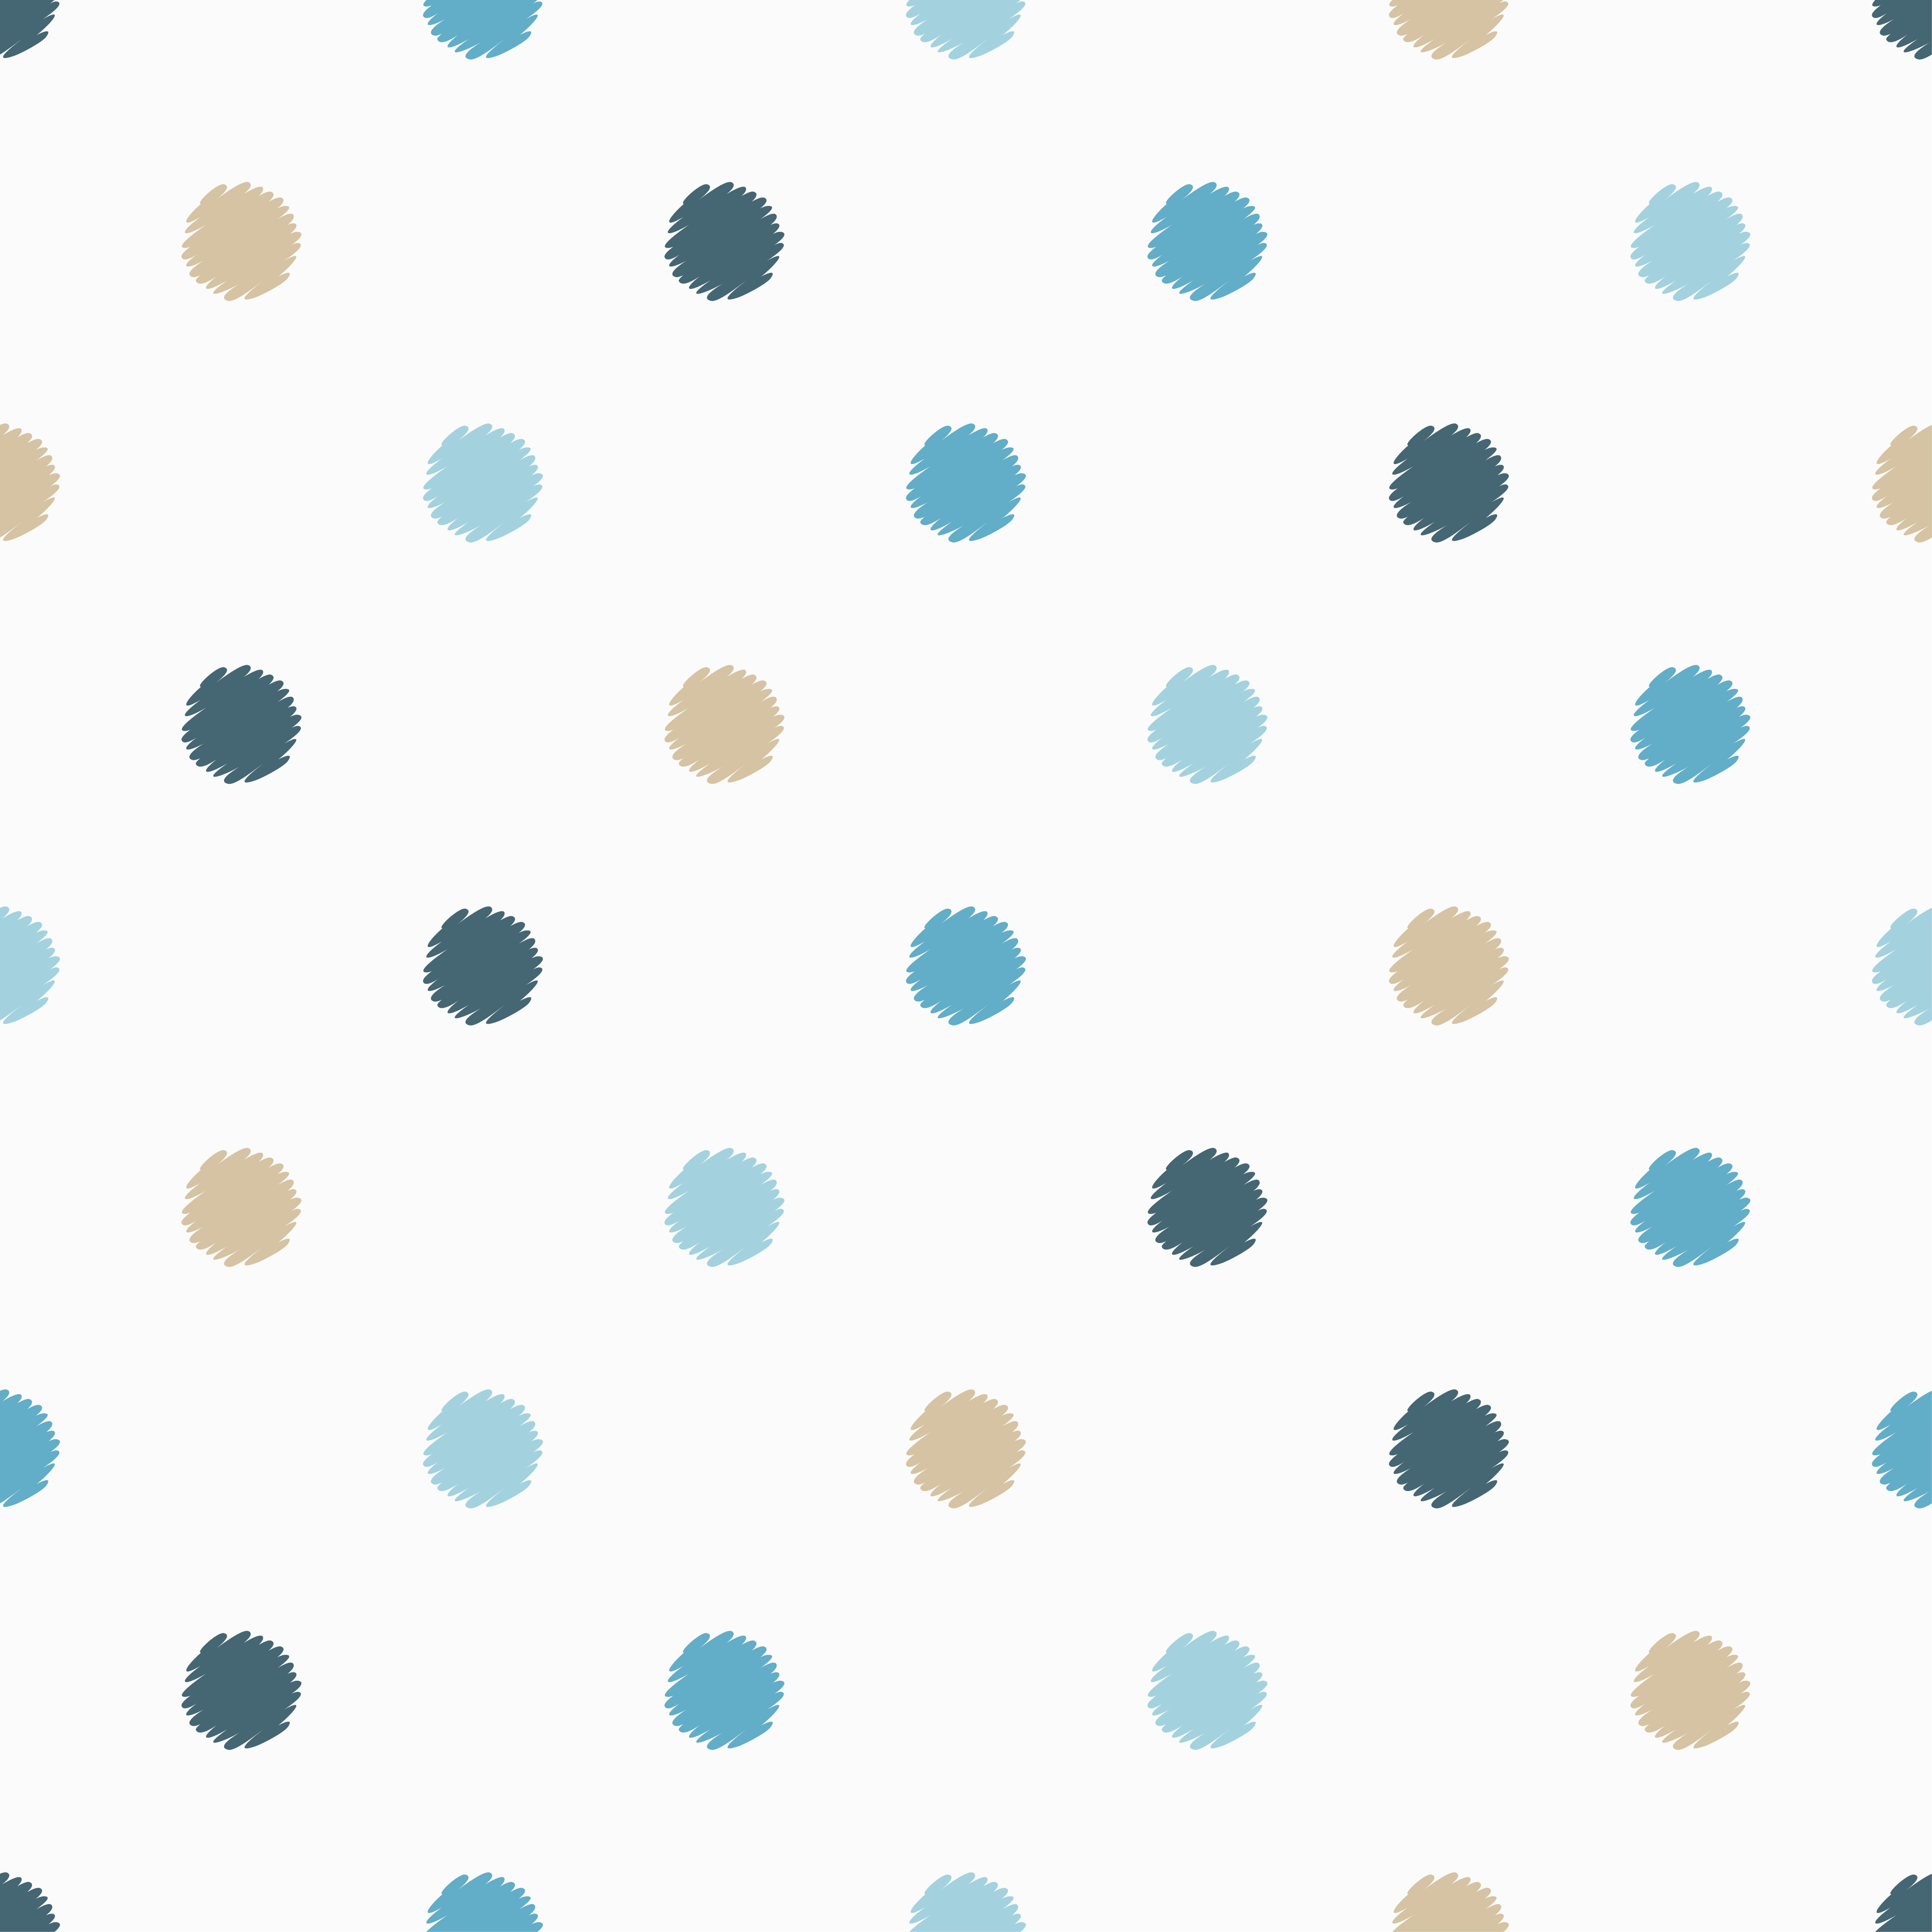 Polka dot seamless pattern. Scribble texture.  example image 2